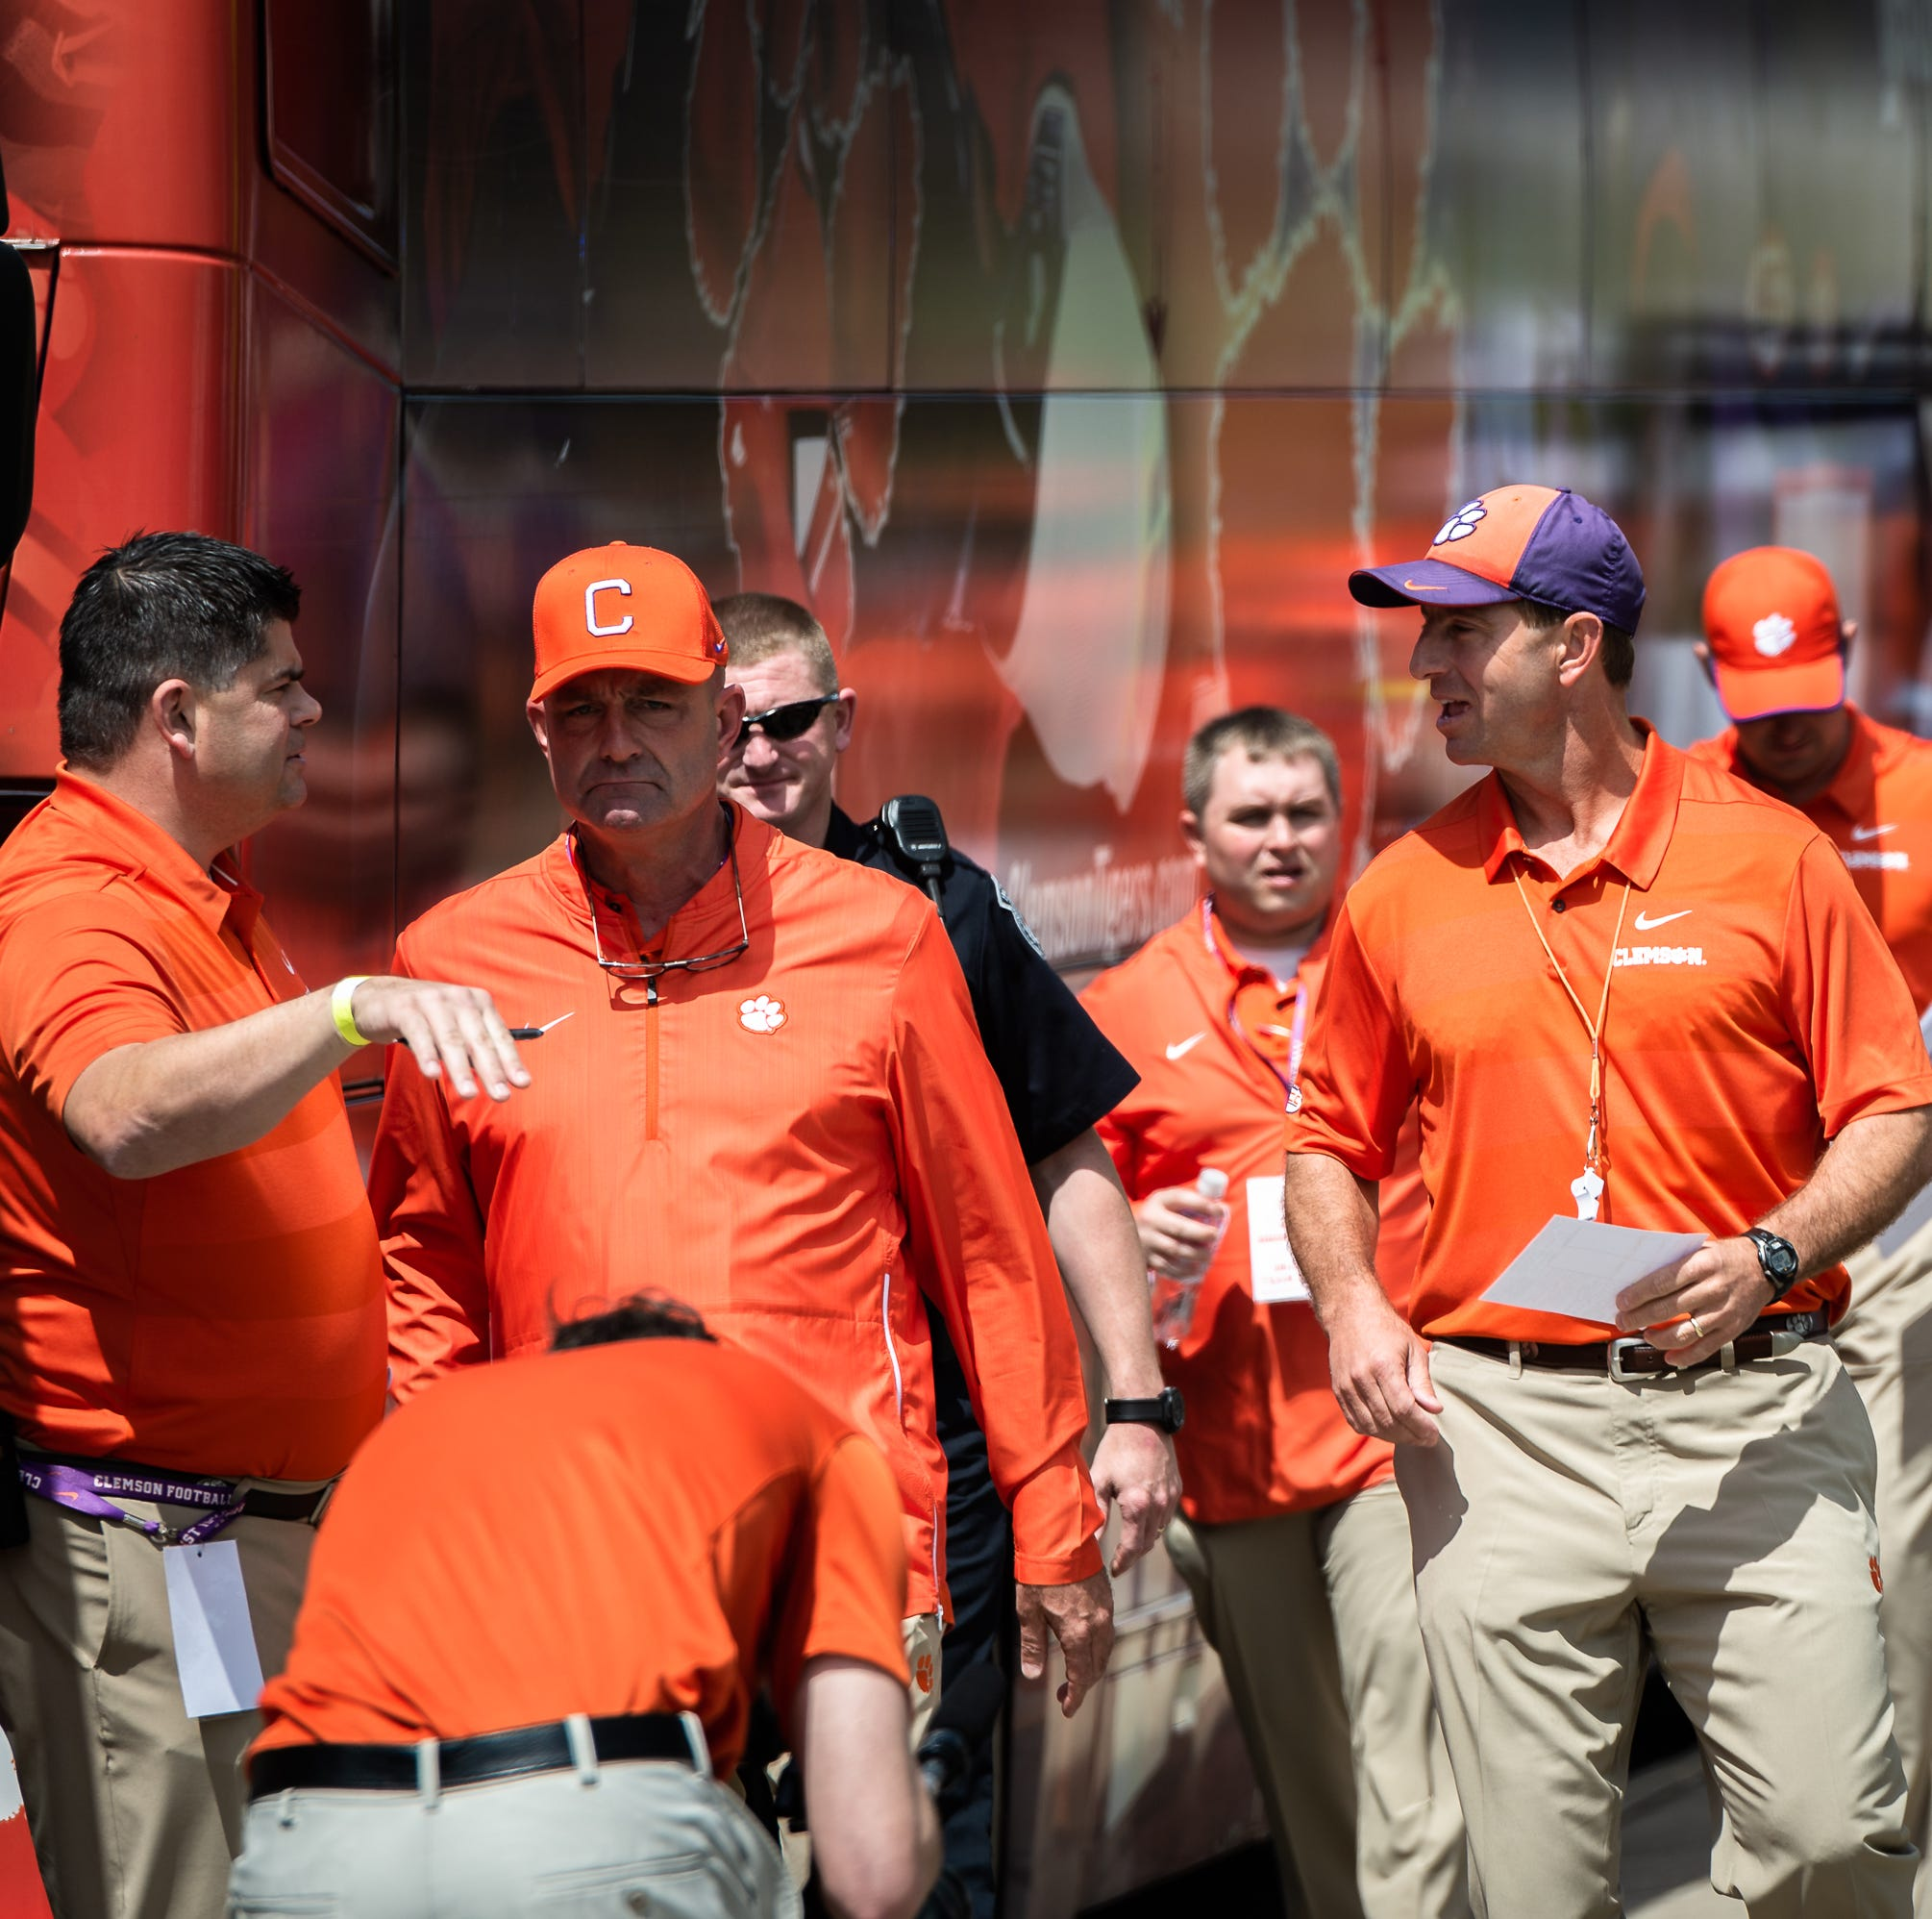 Clemson football, Dabo Swinney on verge of No. 1 recruiting ranking